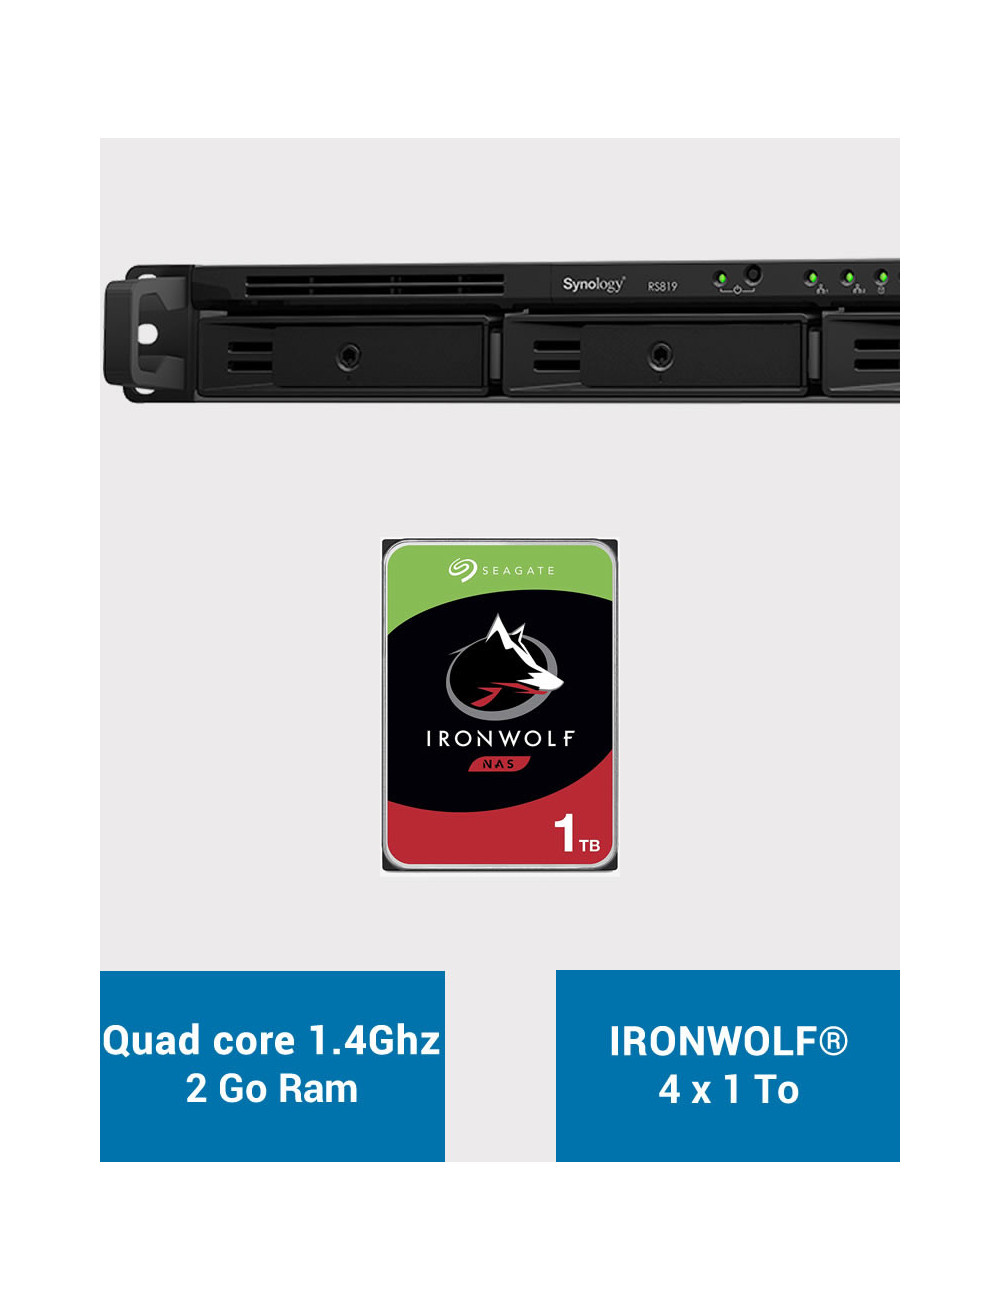 Synology RS819 Serveur NAS IRONWOLF 4To (4x1To)